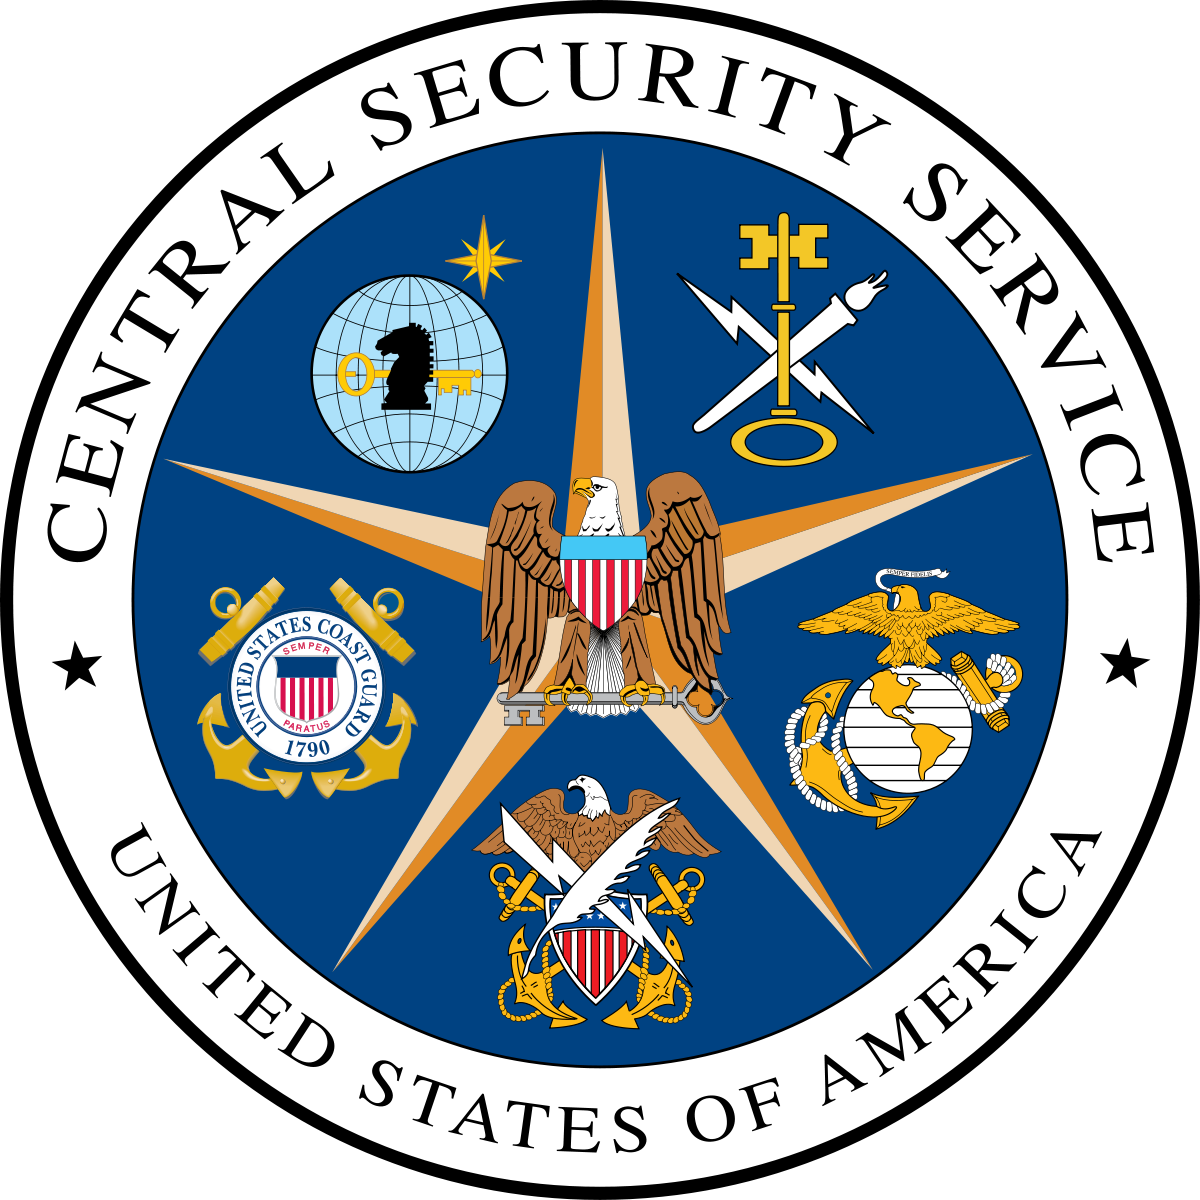 Central Security Service Wikipedia Security service